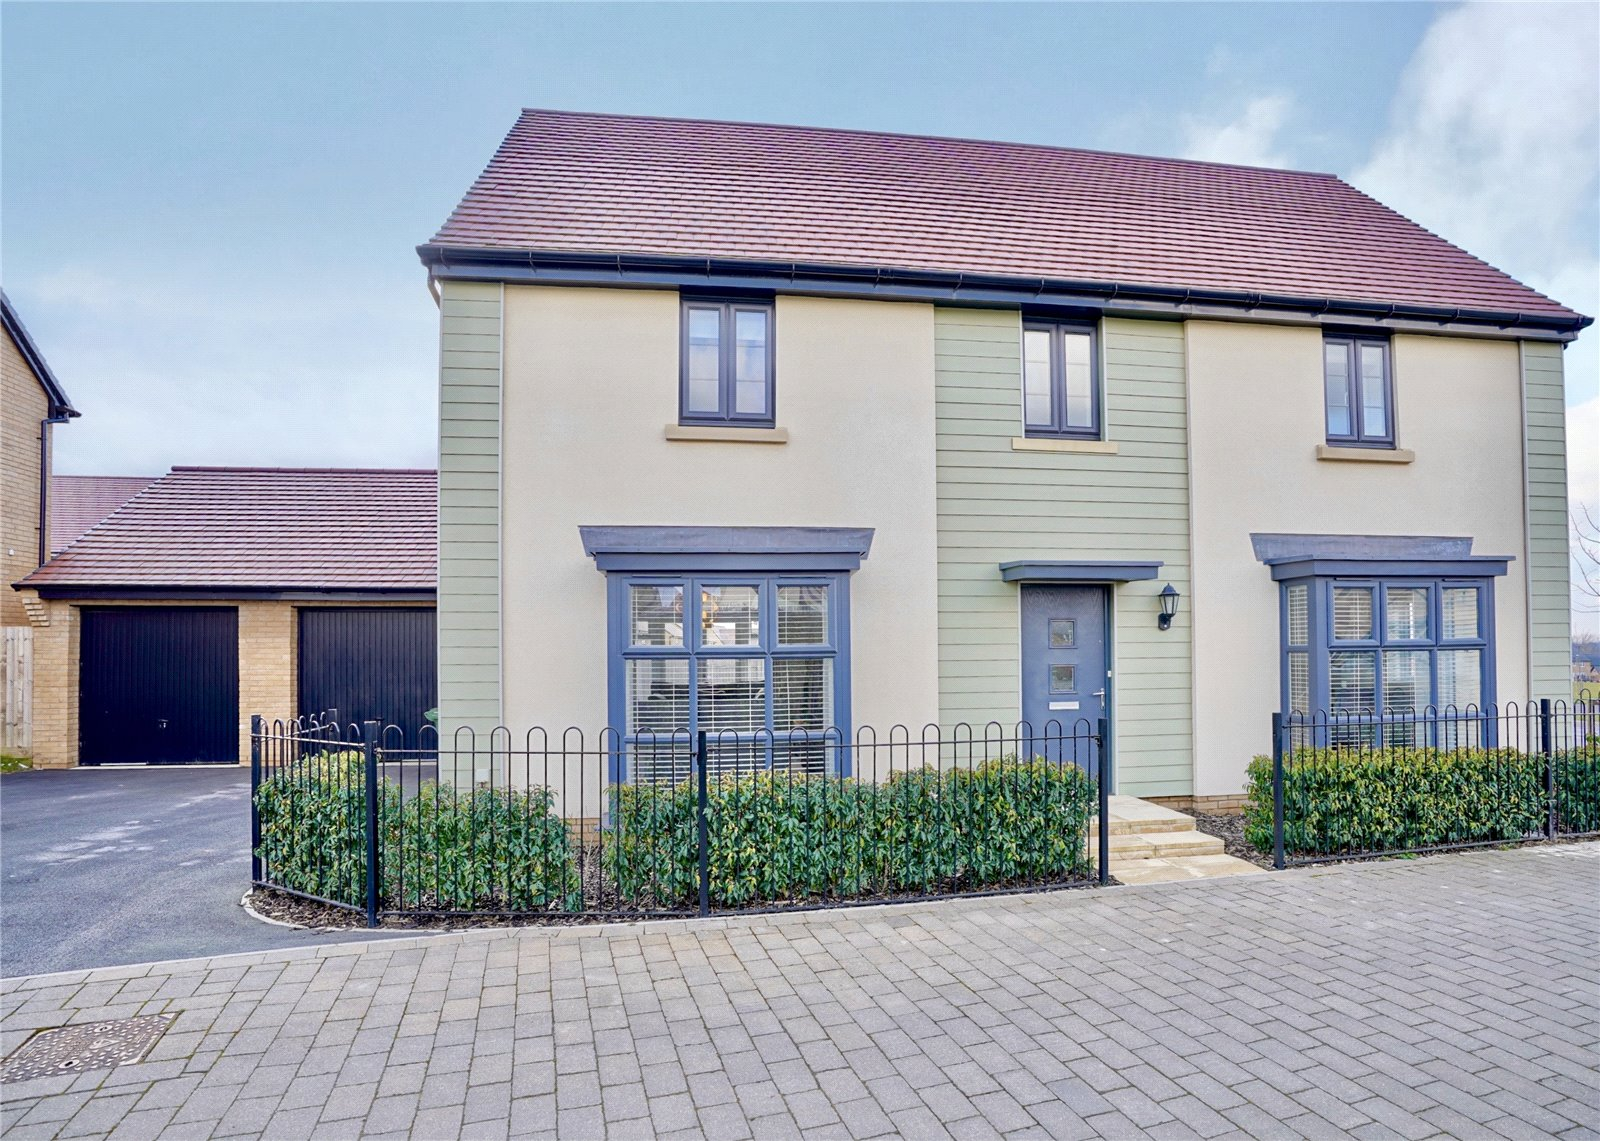 5 bed house for sale in Godmanchester, PE29 2NG - Property Image 1